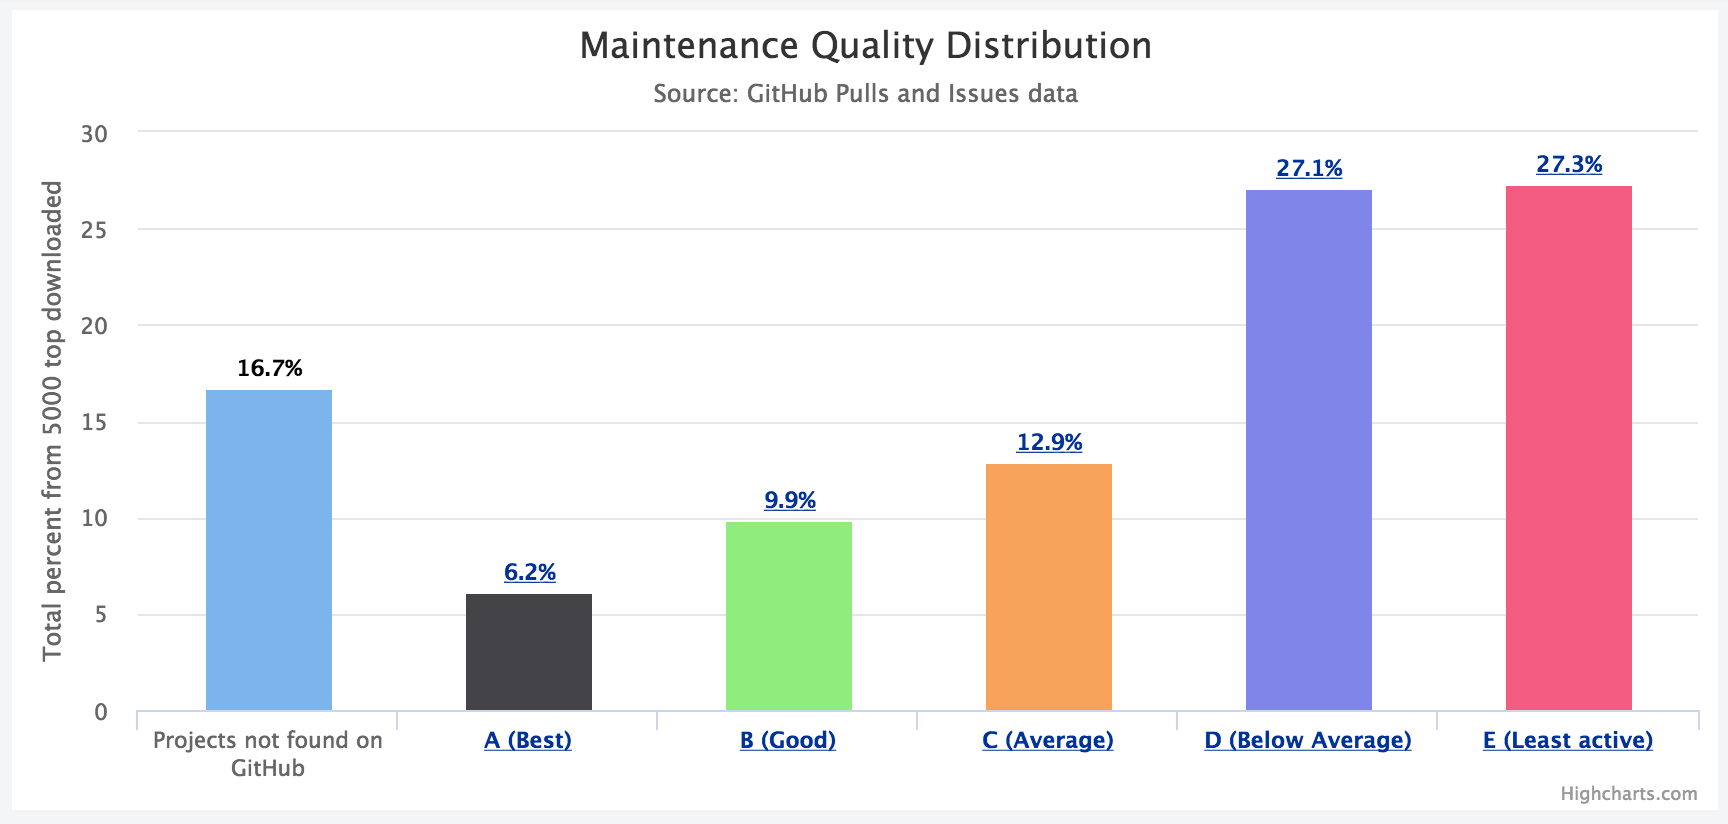 Maintenance Quality Distribution